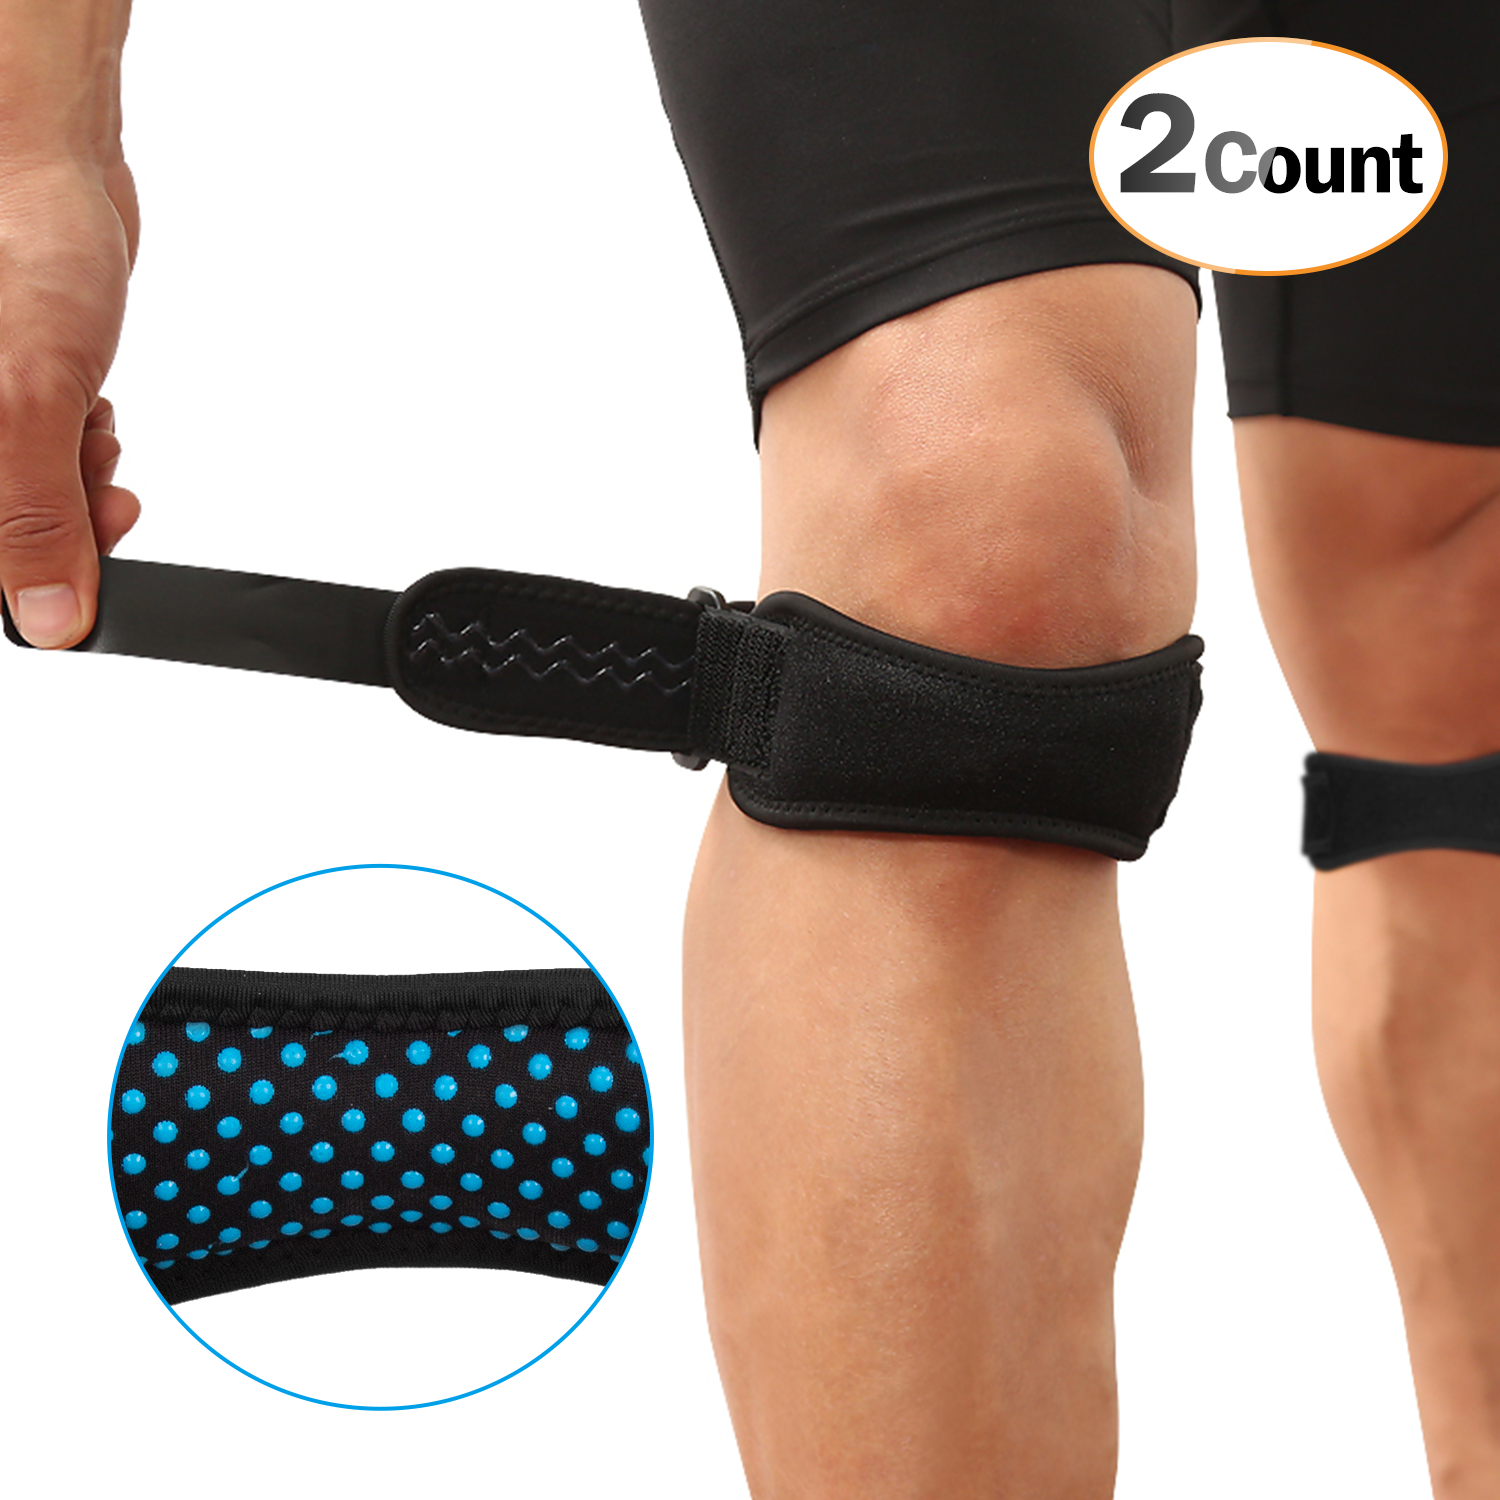 AGPTEK 2 Pack Patella Knee Strap, Anti-slip Knee Pain Relief Band with Silicone Pad,Pain Relief for Basketball Volleyball, Running, Hiking, Tennis etc, Black